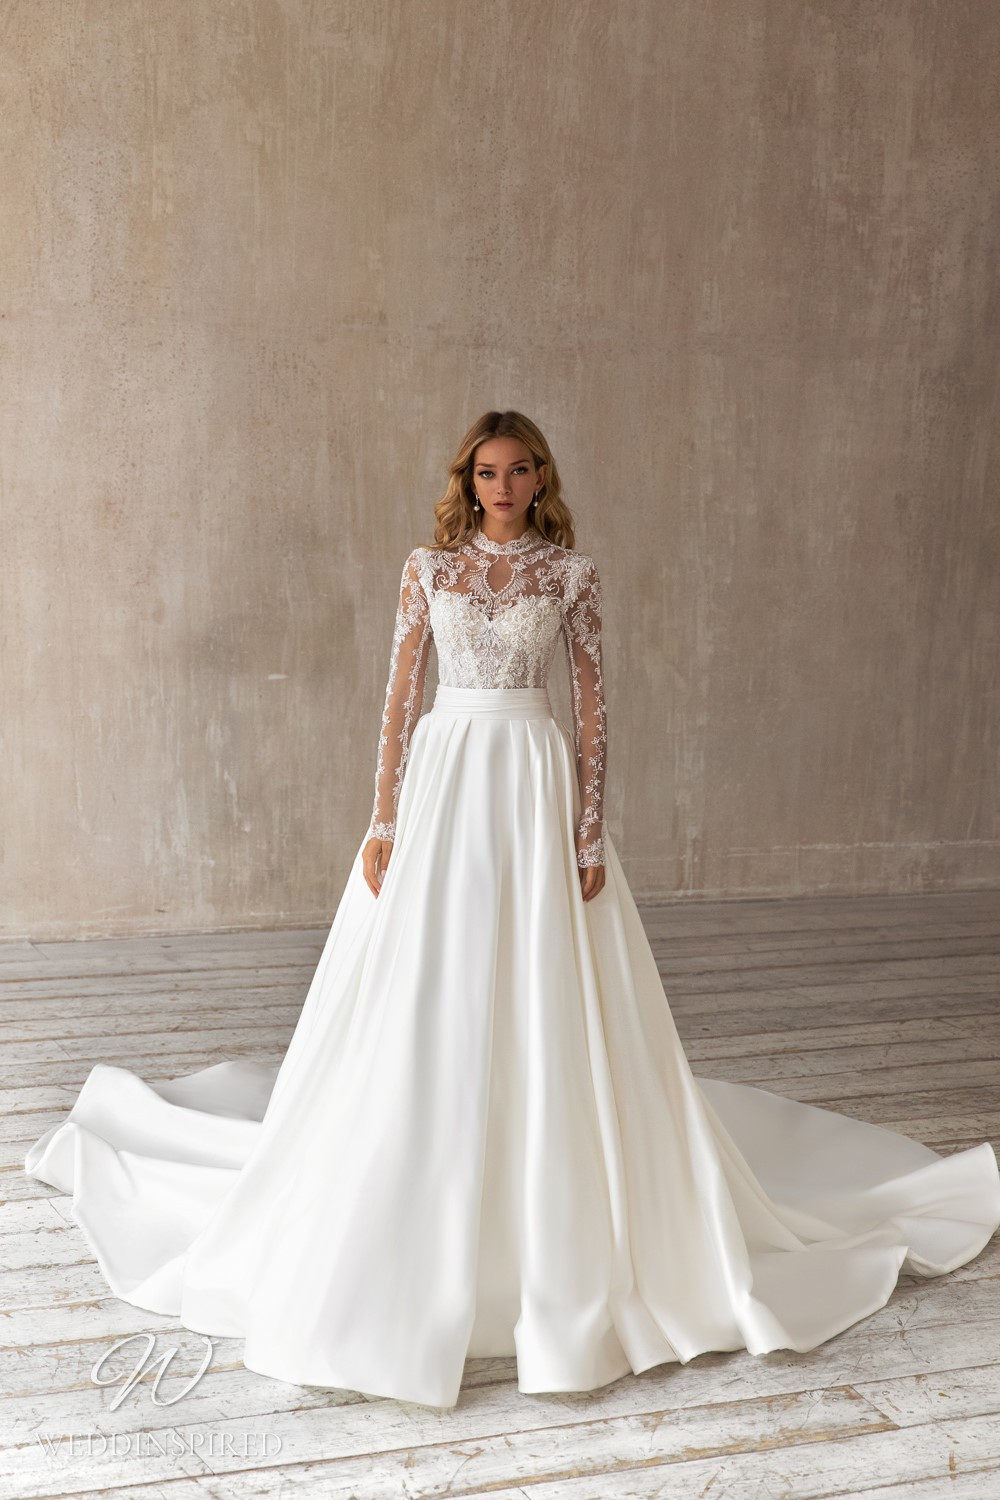 An Eva Lendel 2021 lace mermaid wedding dress with a silk detachable skirt and long illusion sleeves